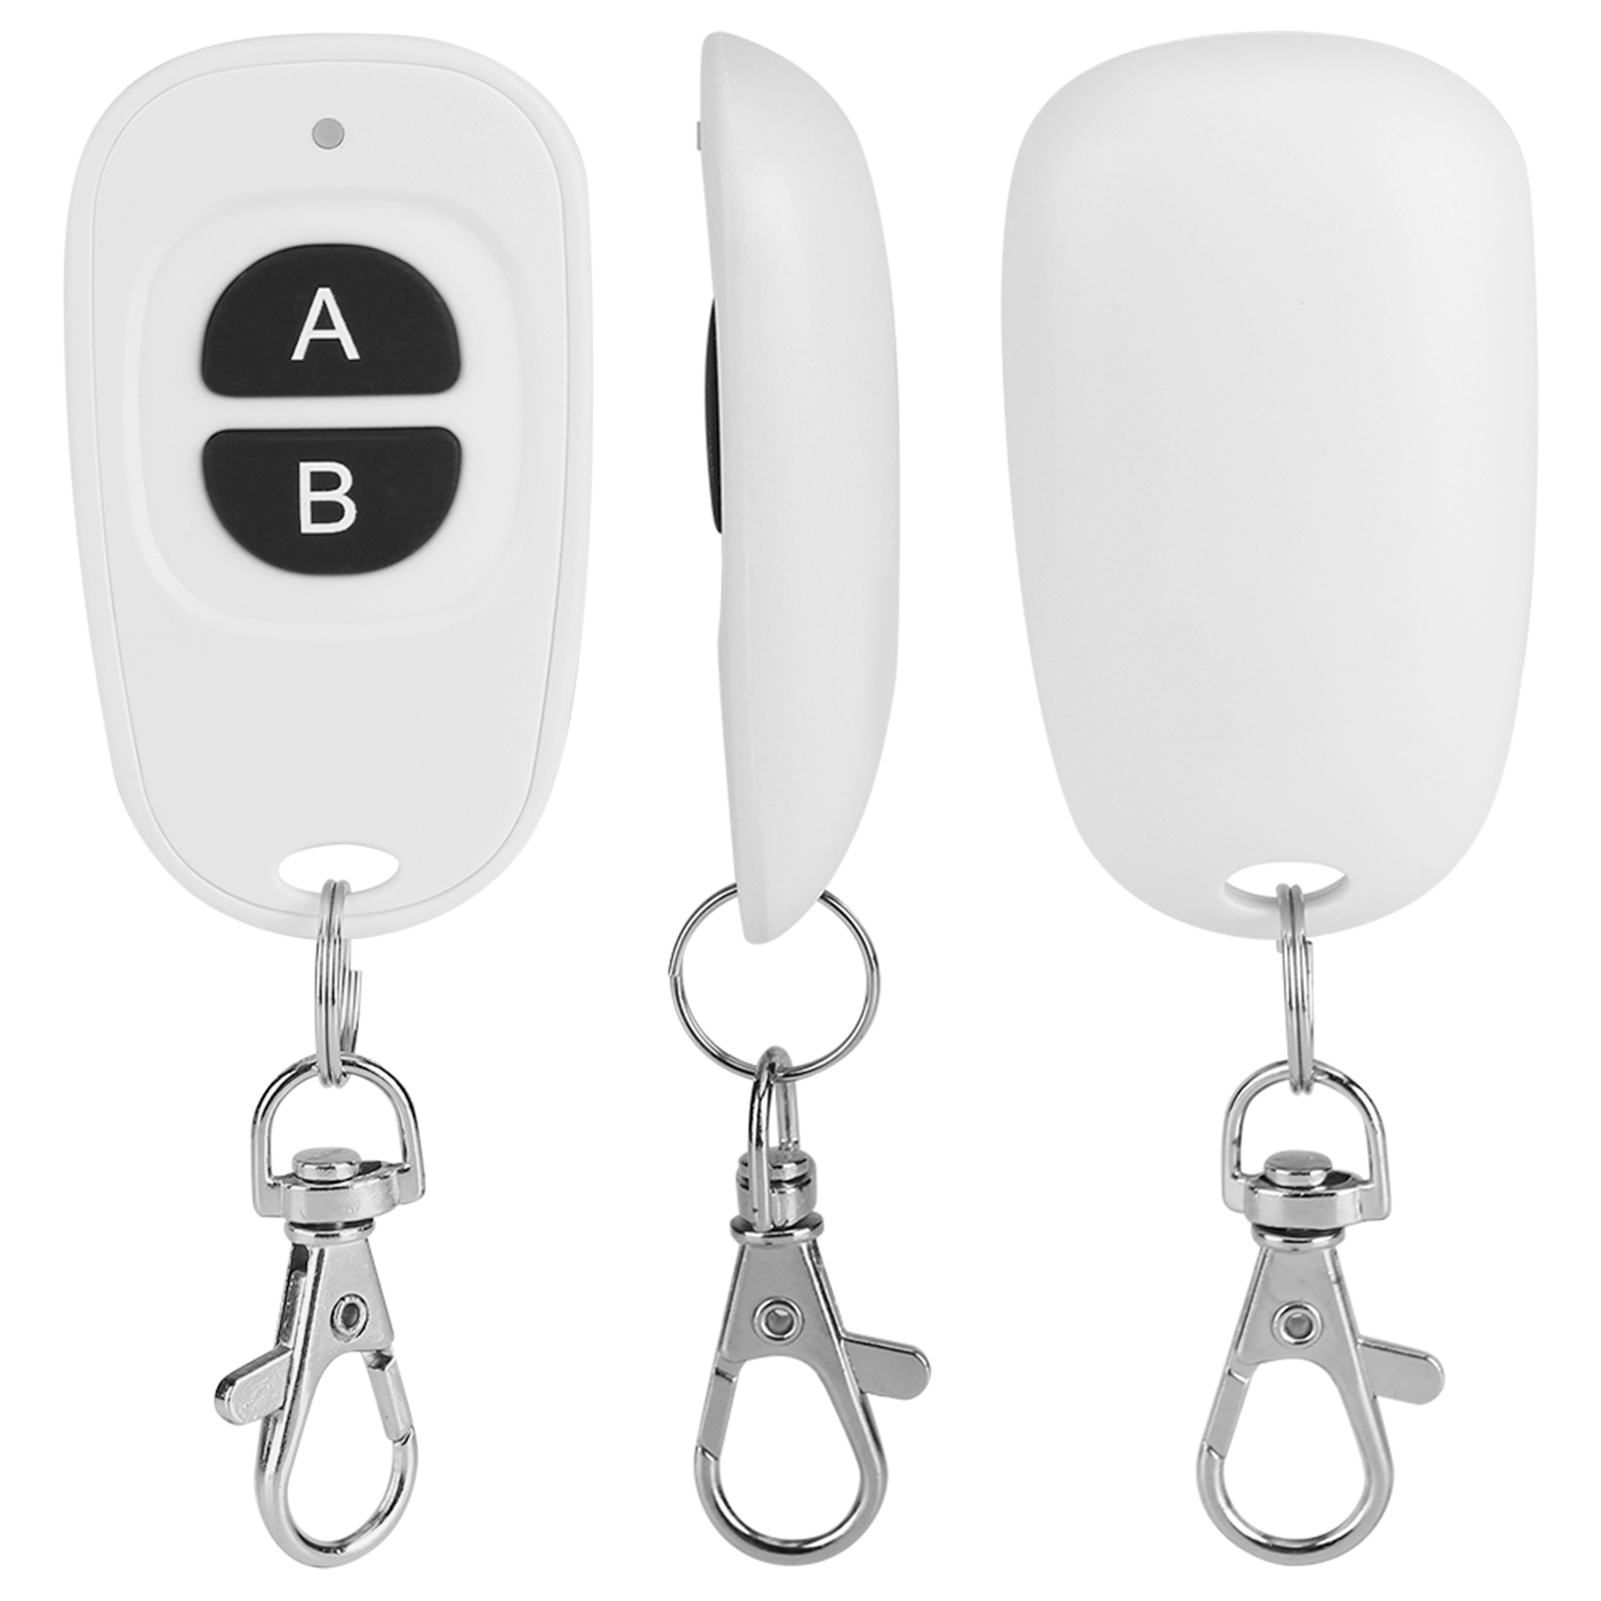 433MHz-EV1527-RF-Wireless-Transmitter-Garage-Door-1-4-Channel-Key-Remote-Control miniature 25